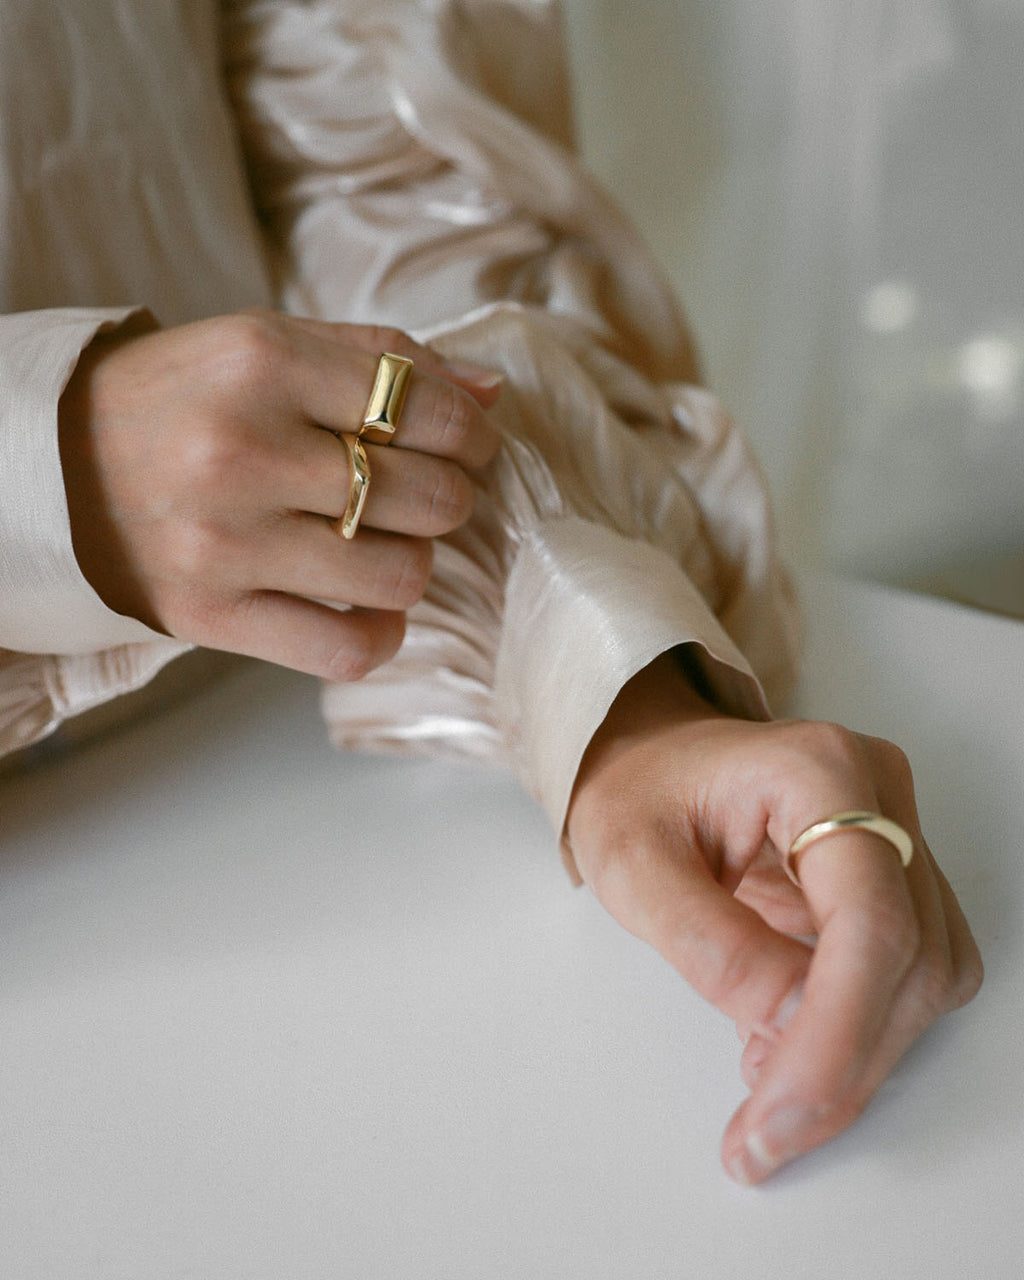 Classy minimalistic rings designed to be worn together - shop the effortless Sage rings at www.thehexad.com